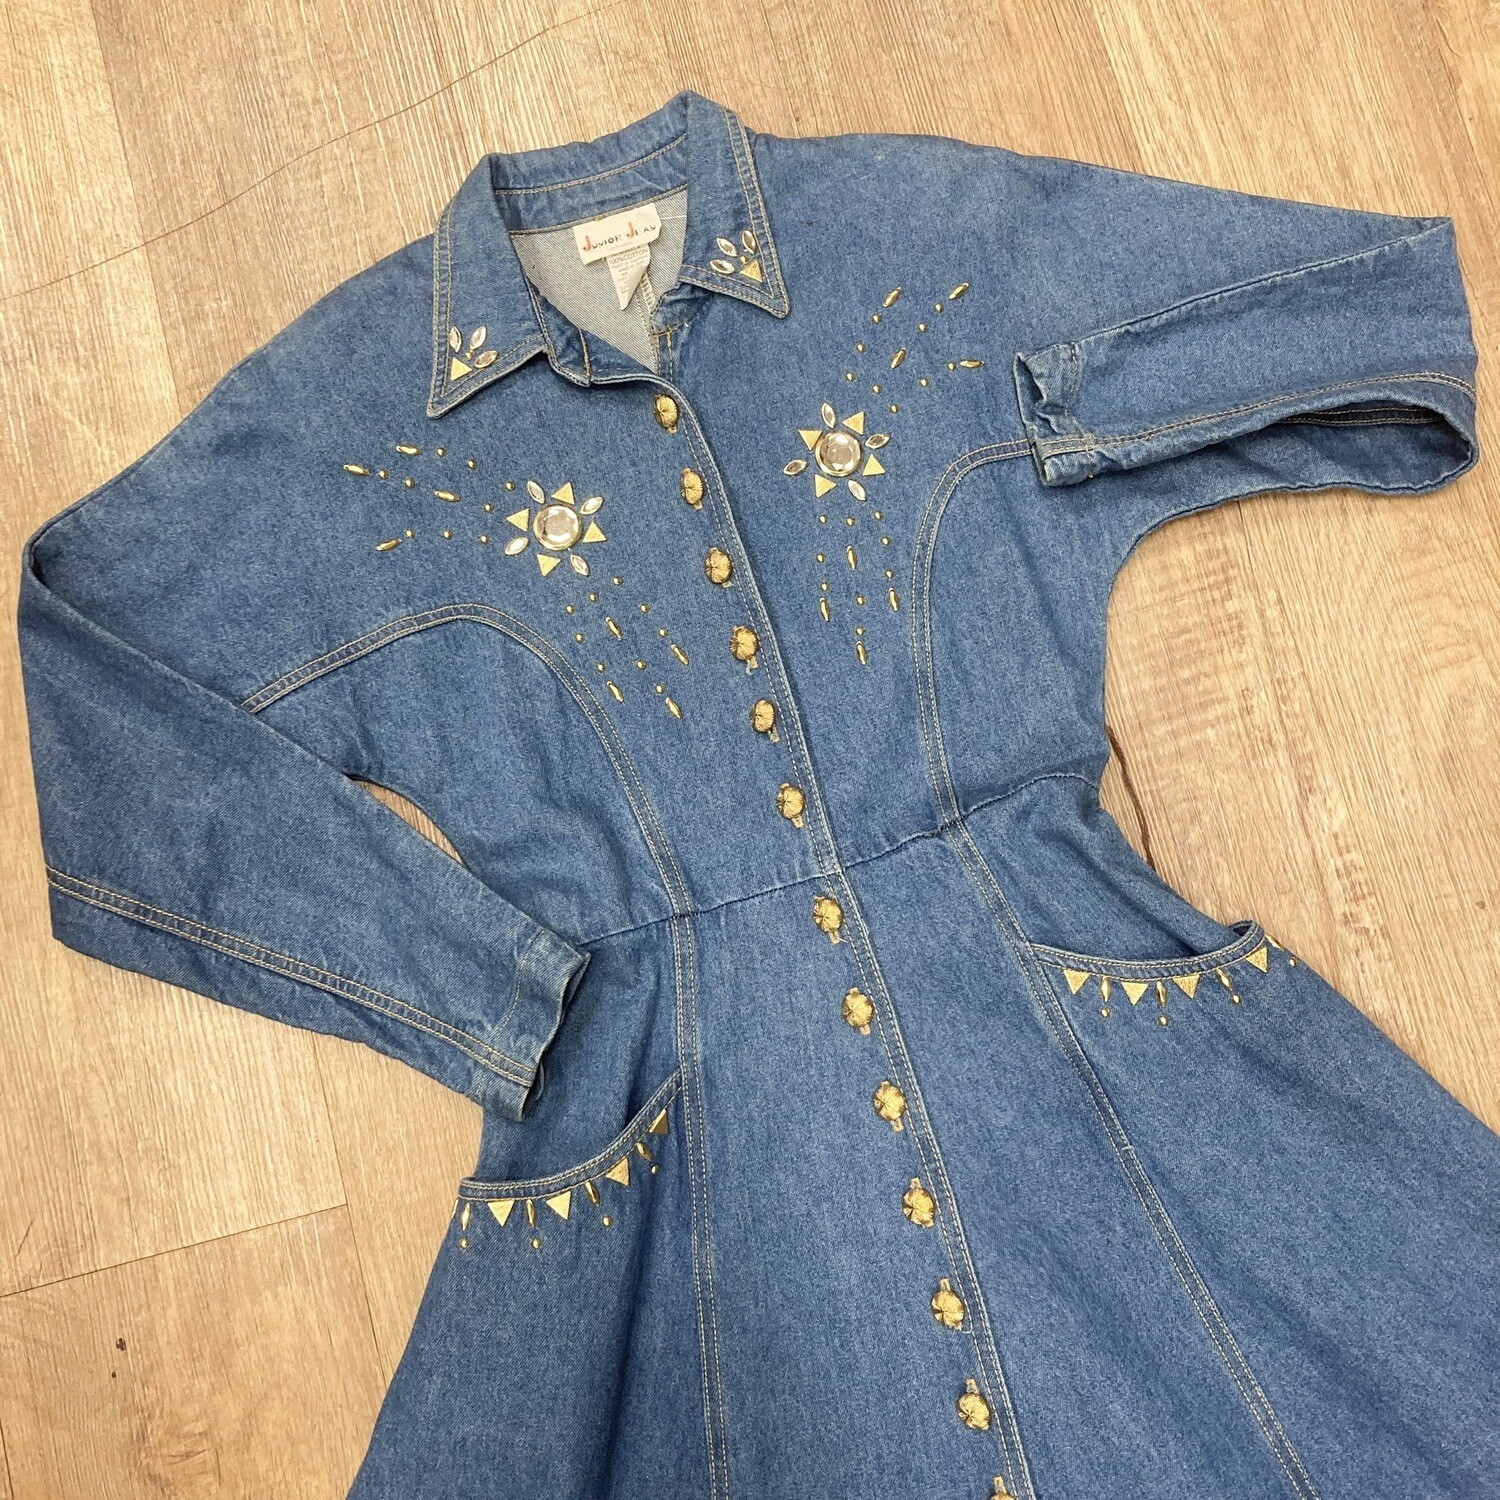 1980s Western Denim Dress With Rhinestone Details